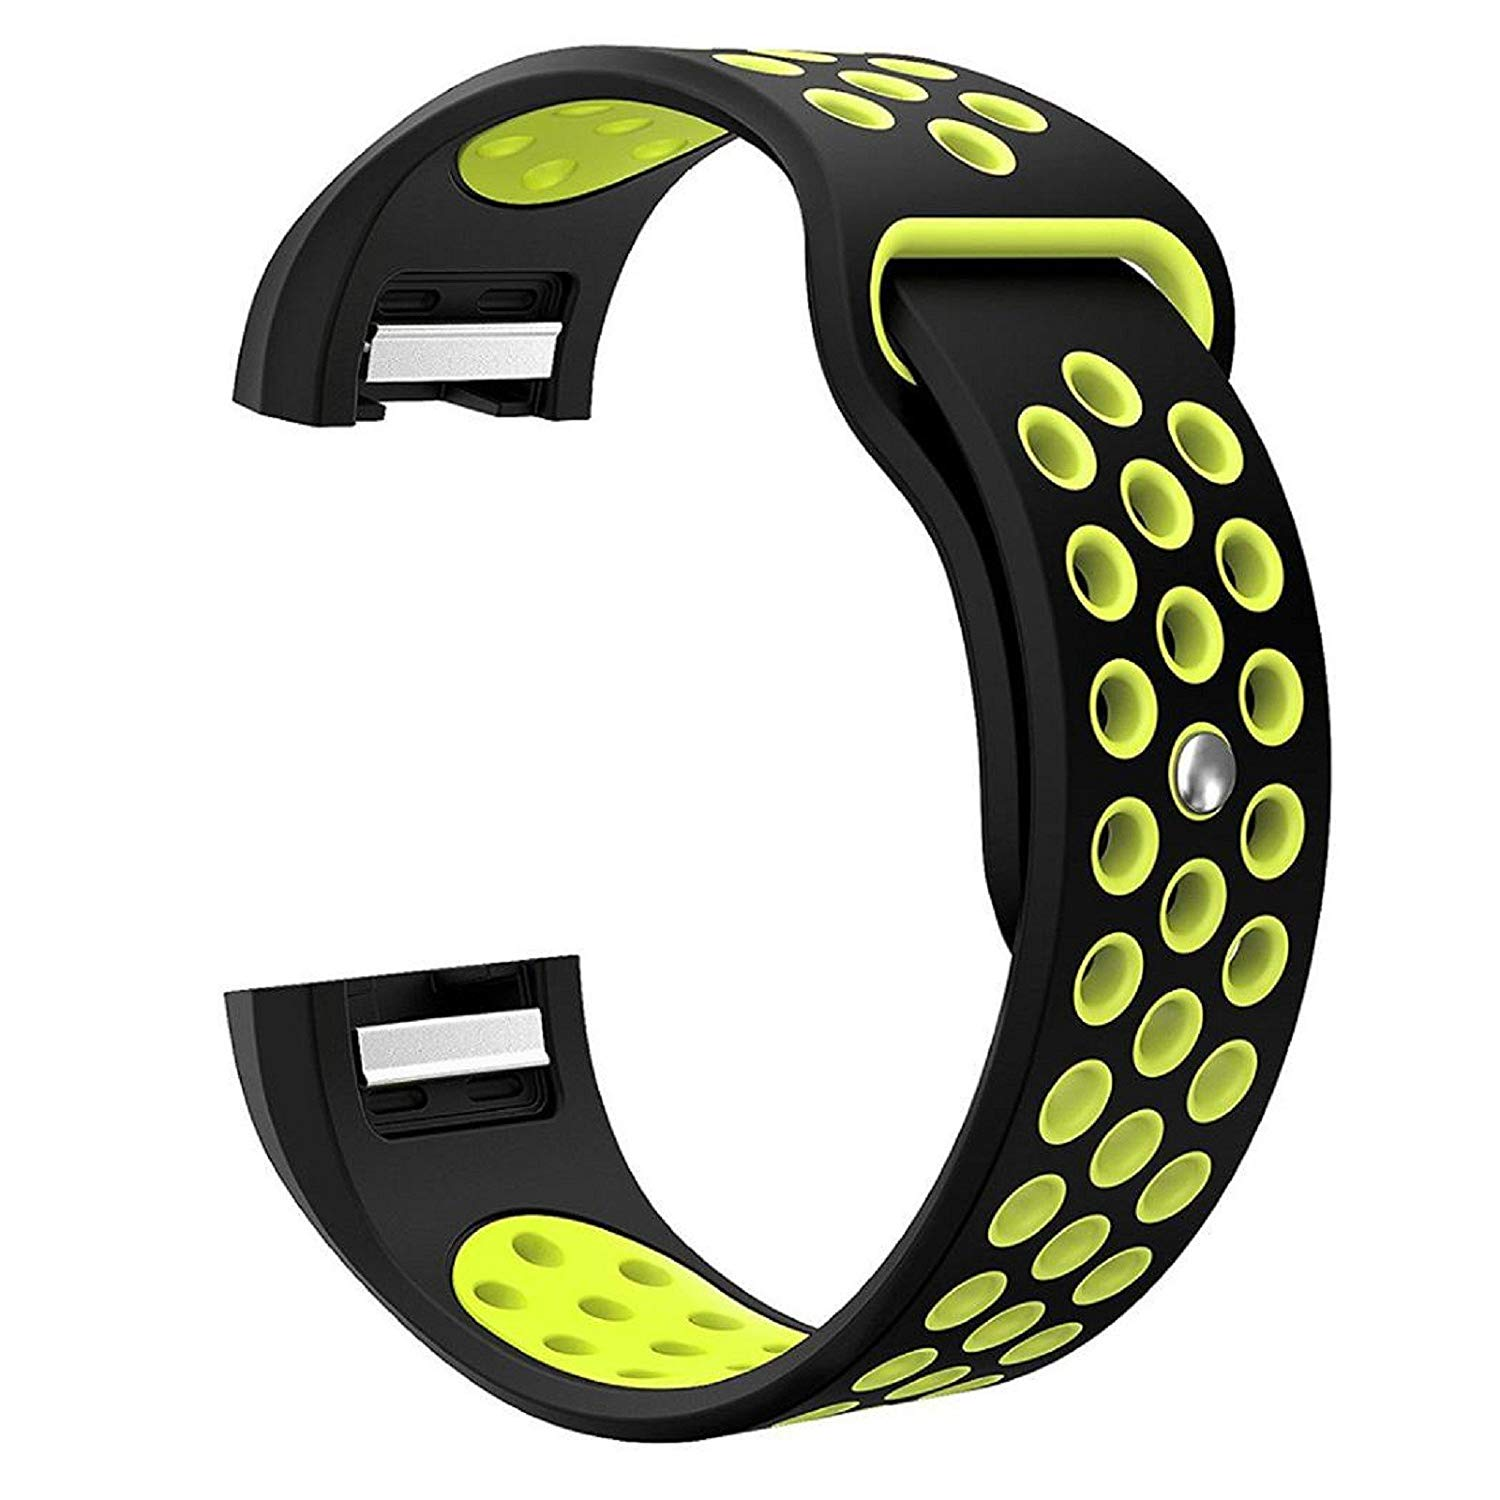 """Owill Fashion Sports Soft Comfortable Silicone Bracelet Strap Band For Fitbit Charge 2, Applicable Wrist: About 6.4""""-8.8"""" (165mm-225mm) (Black)"""